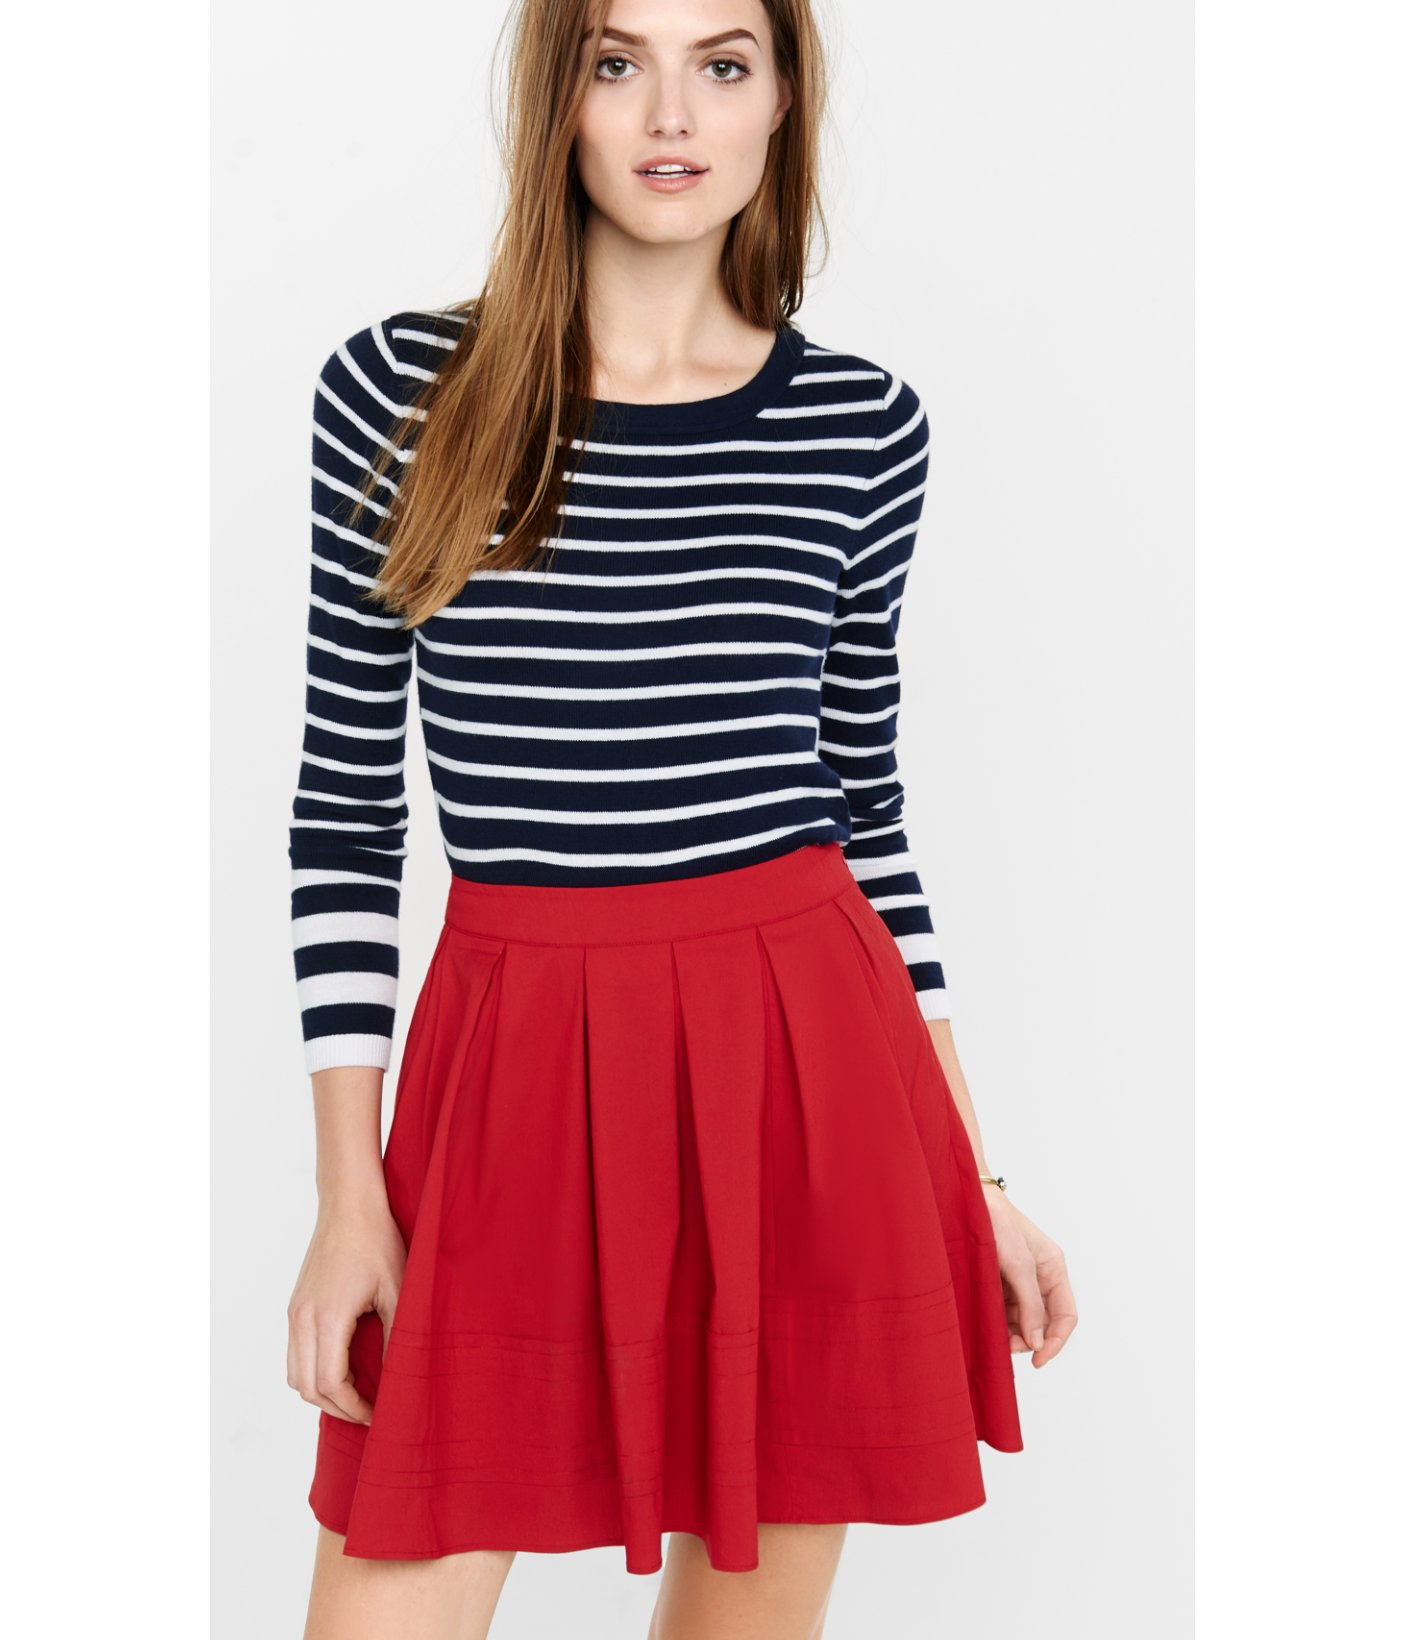 Express Red High Waisted Full Mini Skirt in Red   Lyst